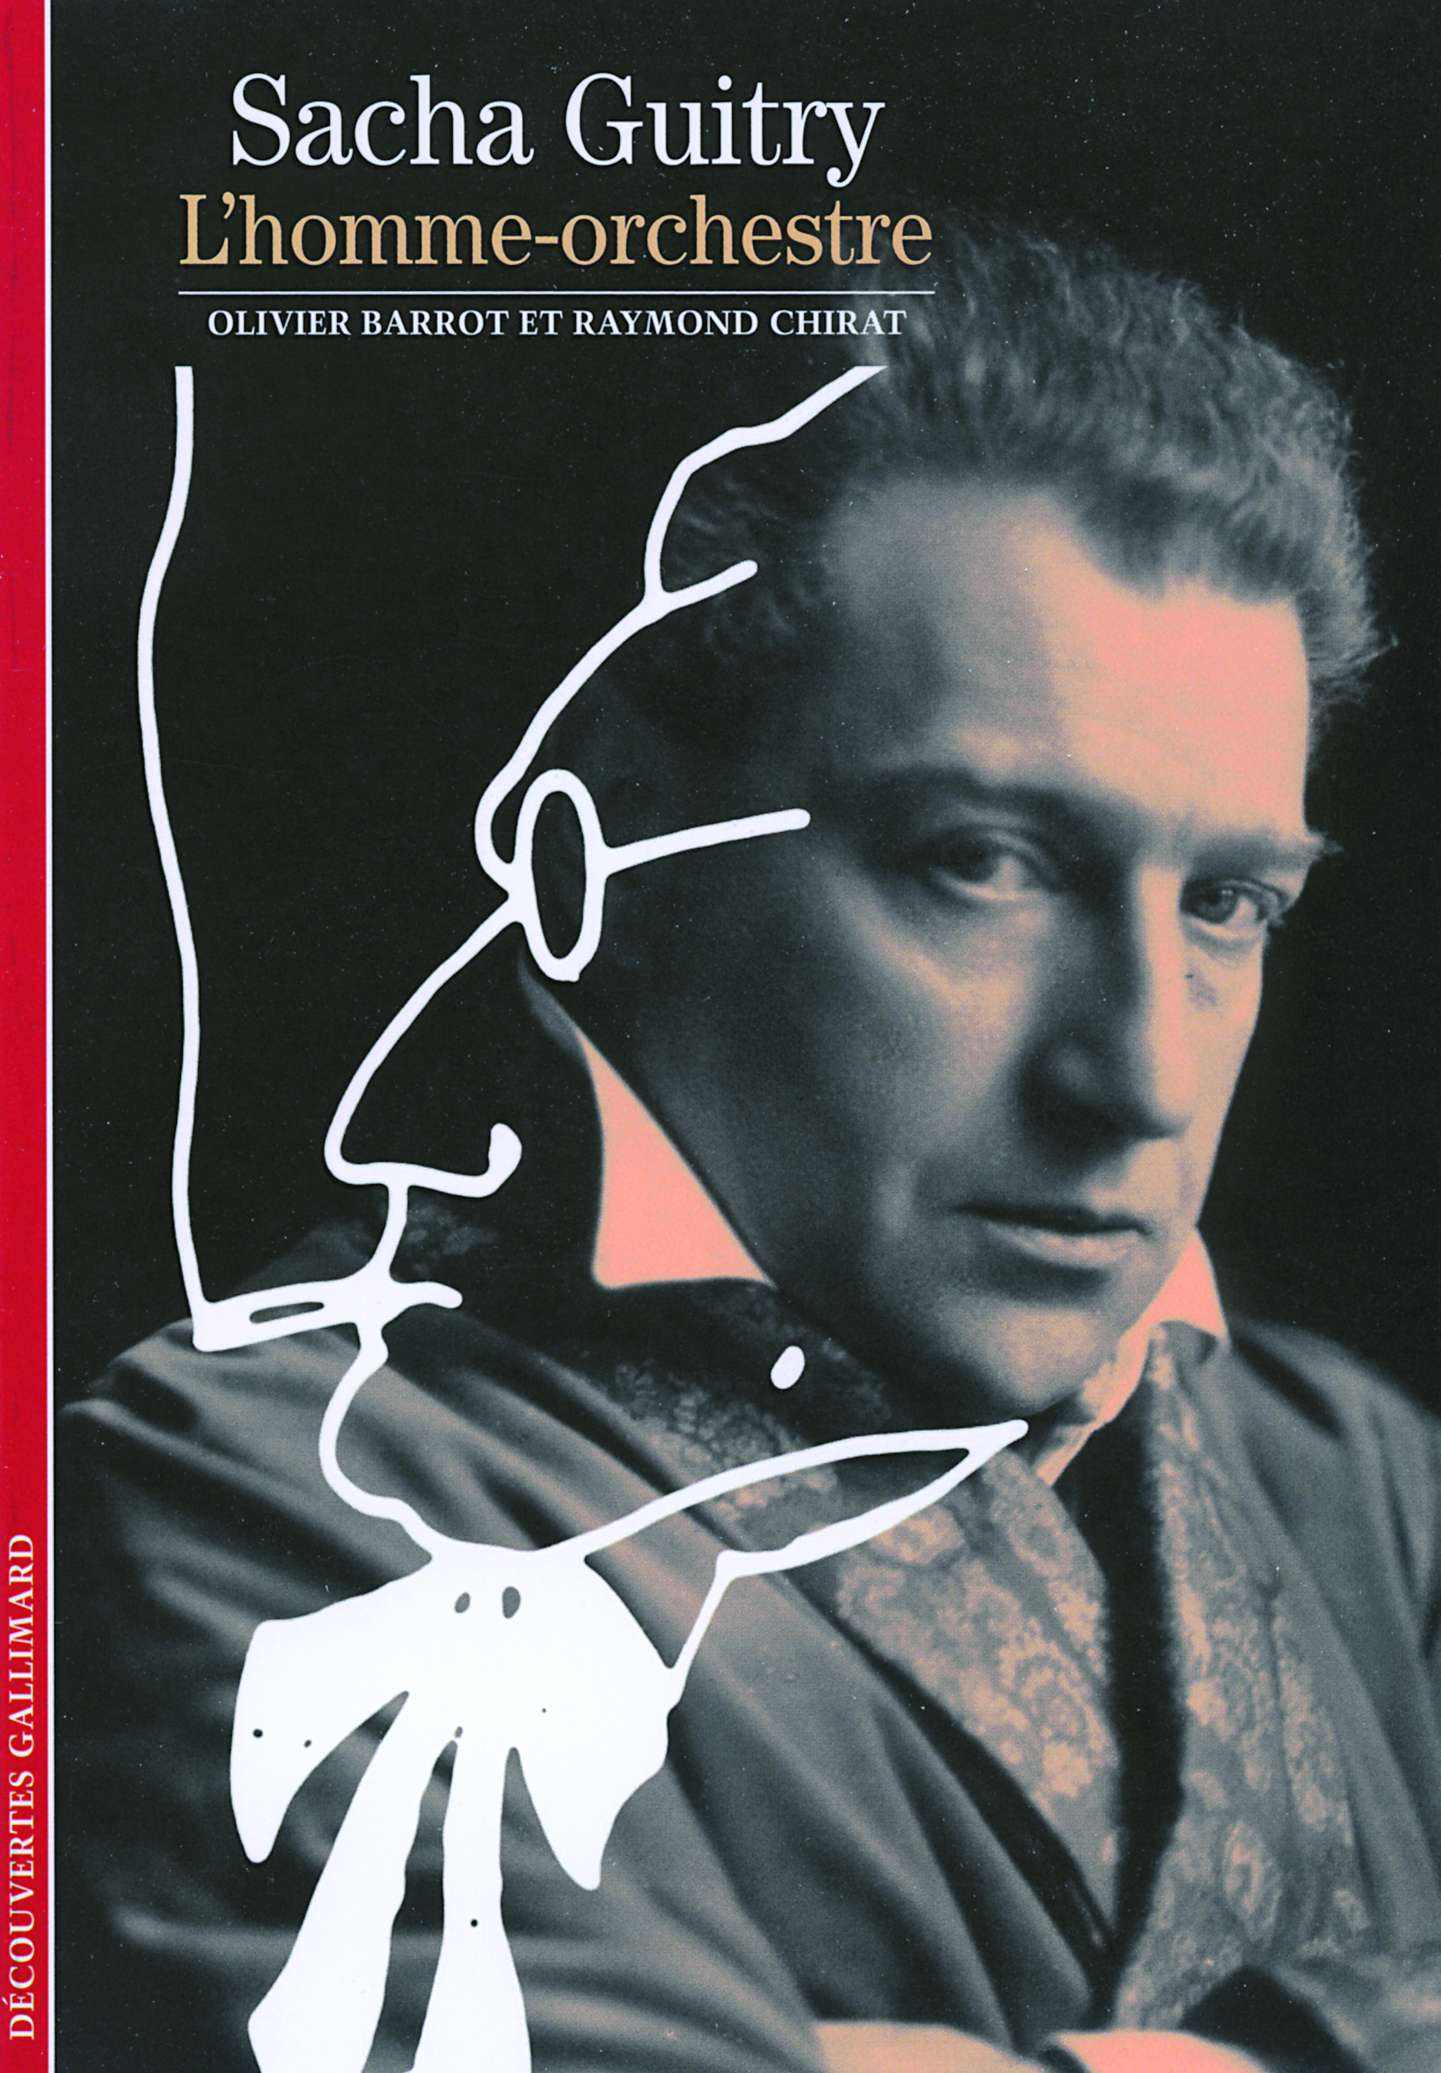 SACHA GUITRY L'HOMME-ORCHESTRE